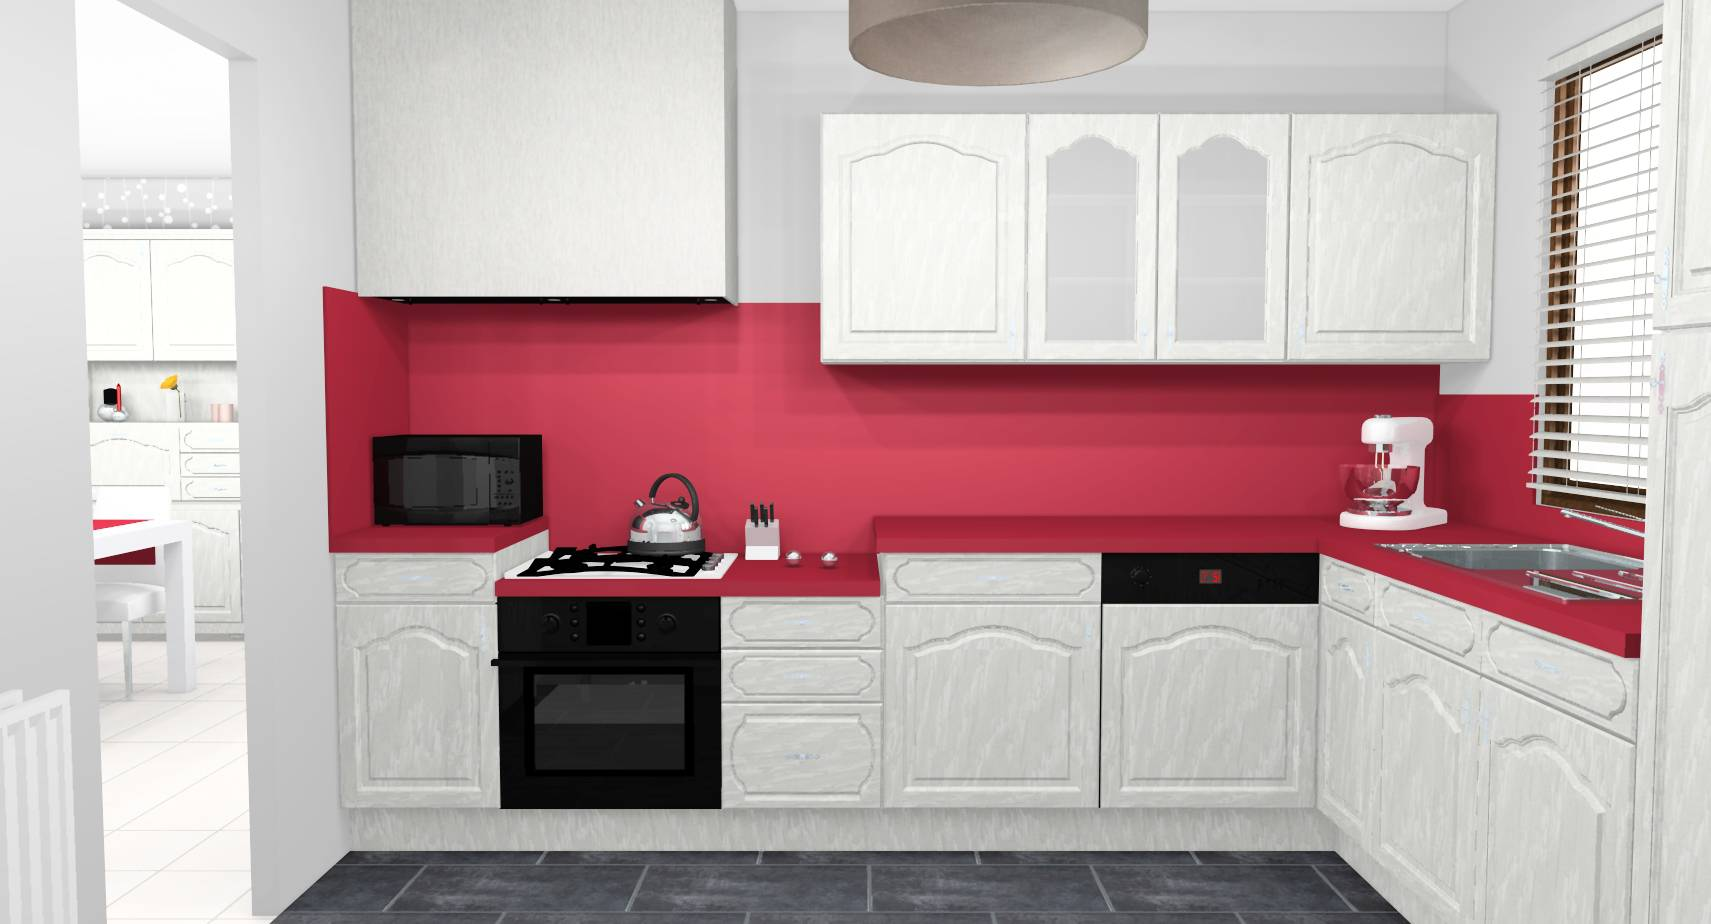 Cuisine campagne chic modernisee meubles peints ceruses rouge gris 1.jpg